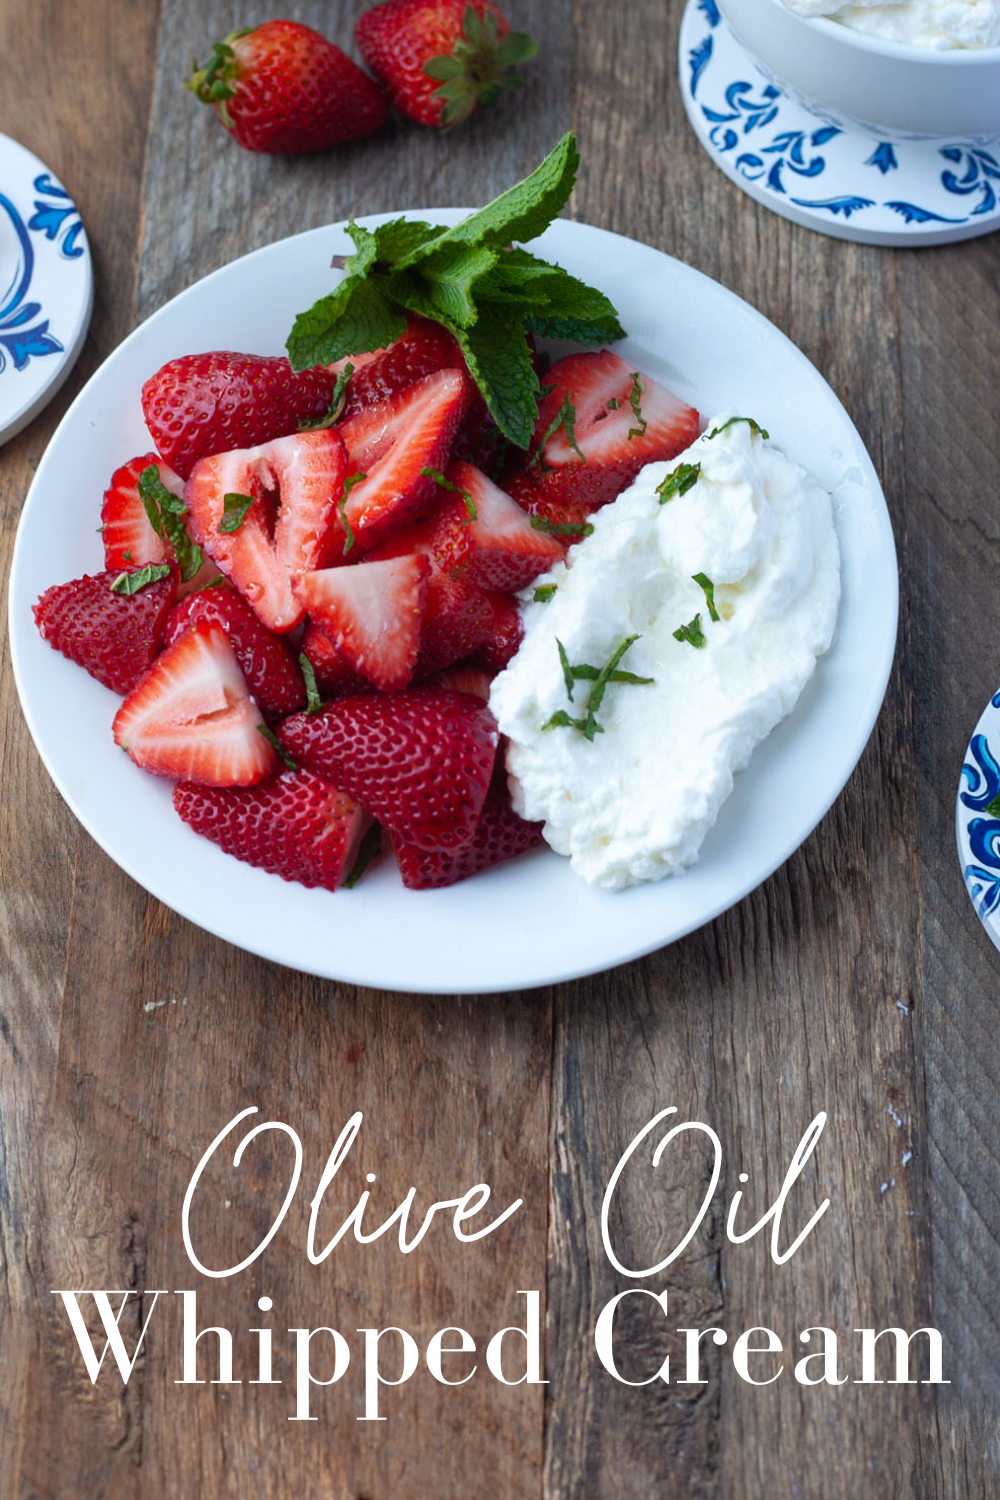 olive oil whipped cream with fresh berries and mint